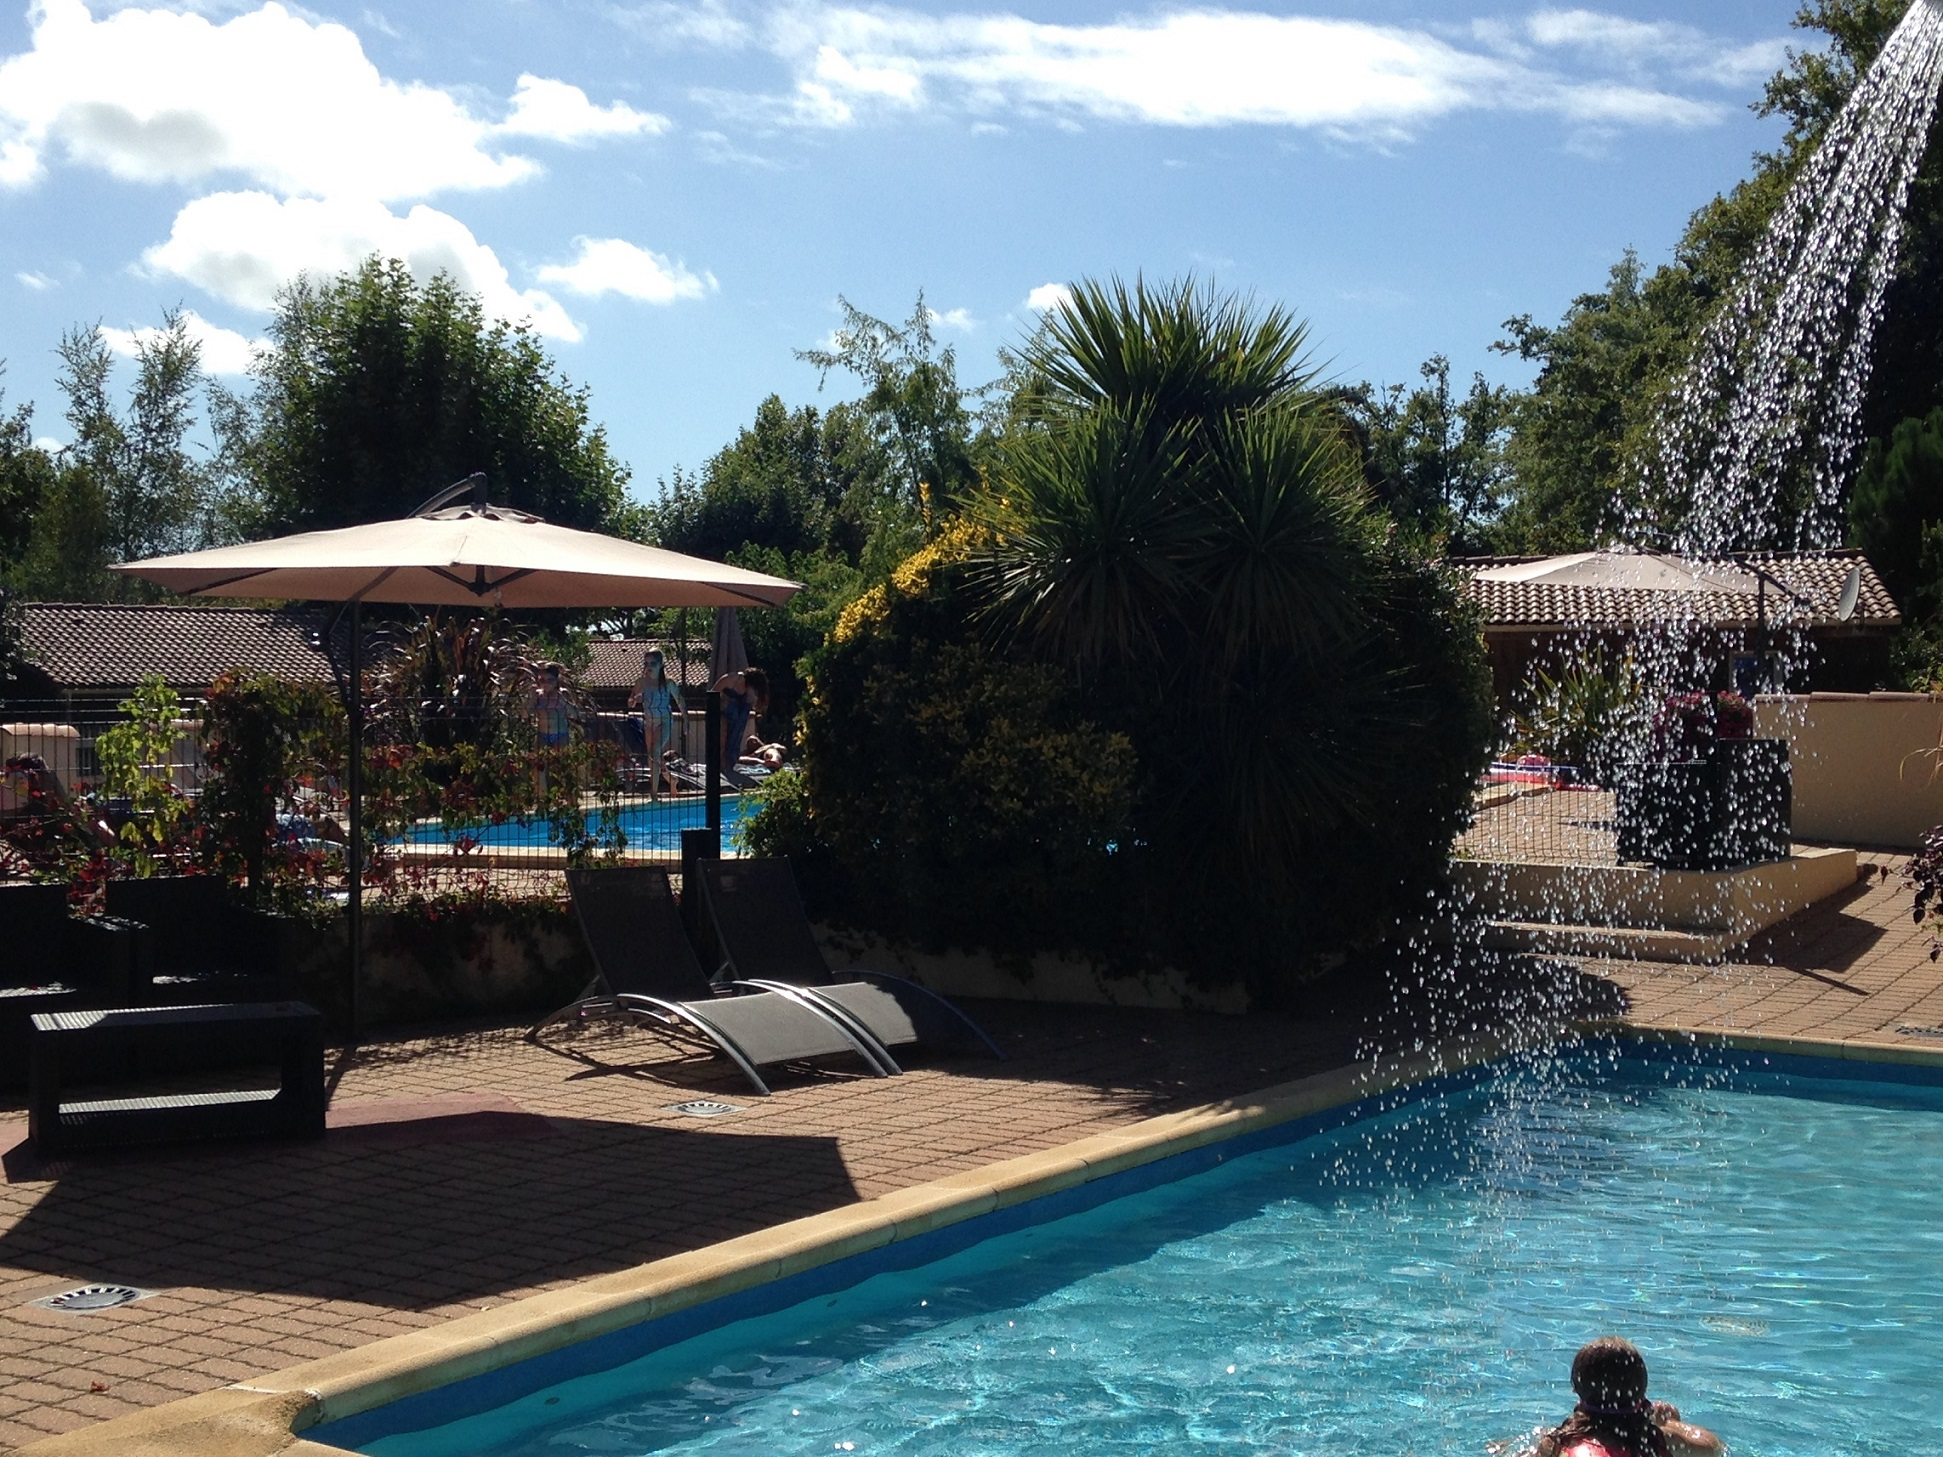 piscine chauffée camping 4 étoiles Ares